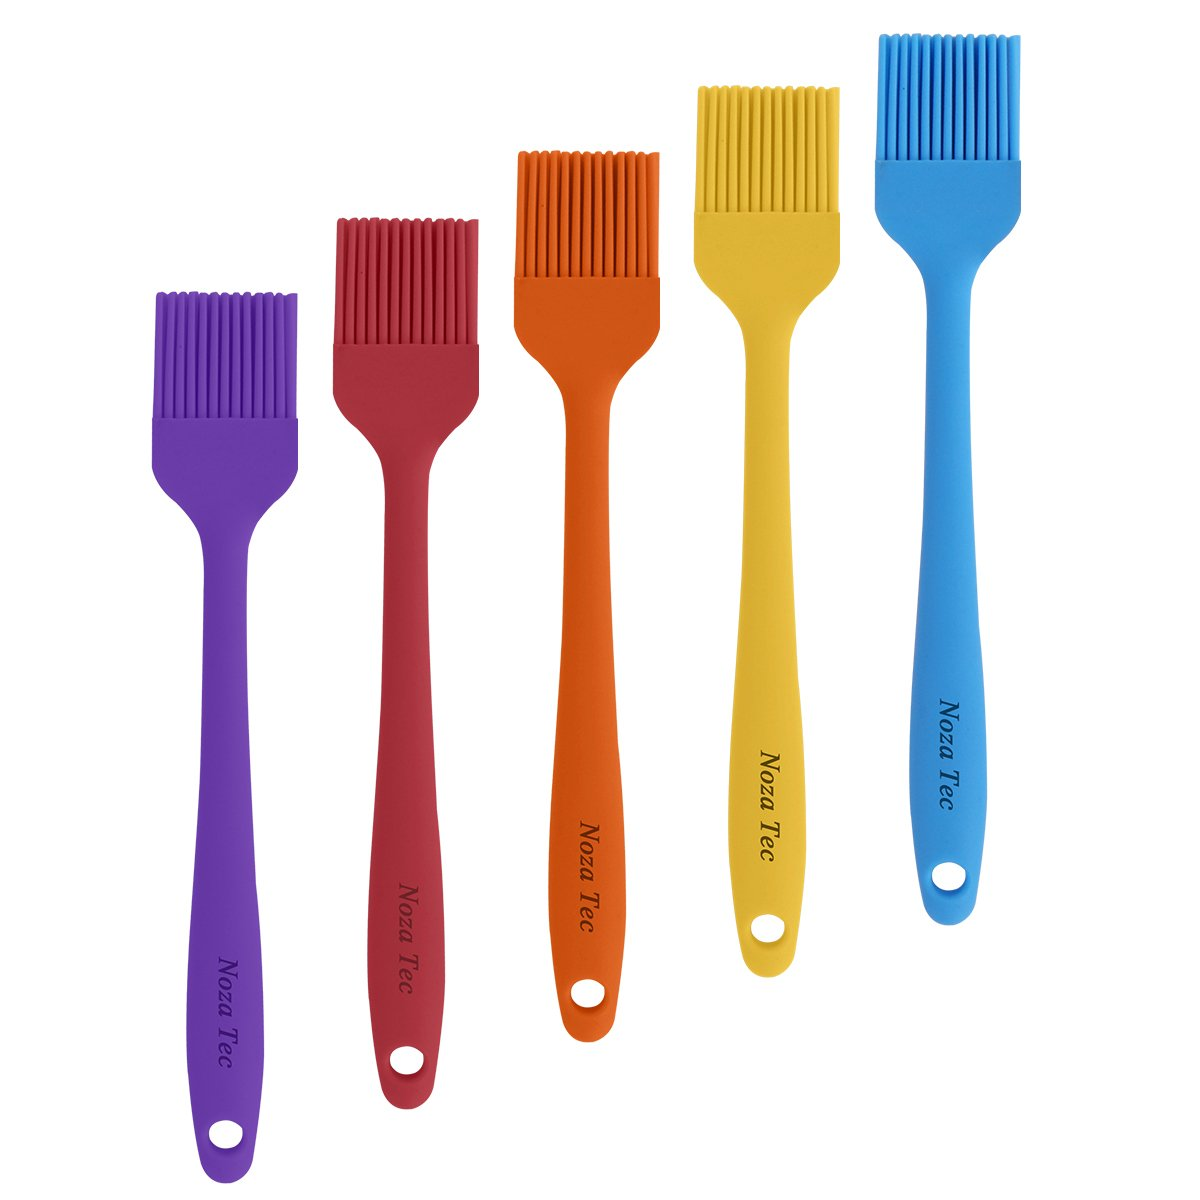 Noza Tec Silicone Basting Pastry and BBQ Brushes durable,soft & flexible, 5 different colours per set, perfect tool for grilling, parties, camping & picnics Heat Resistant Kitchen Utensils - Dishwasher Safe- Essential Cooking Gadget, Bakeware Tool